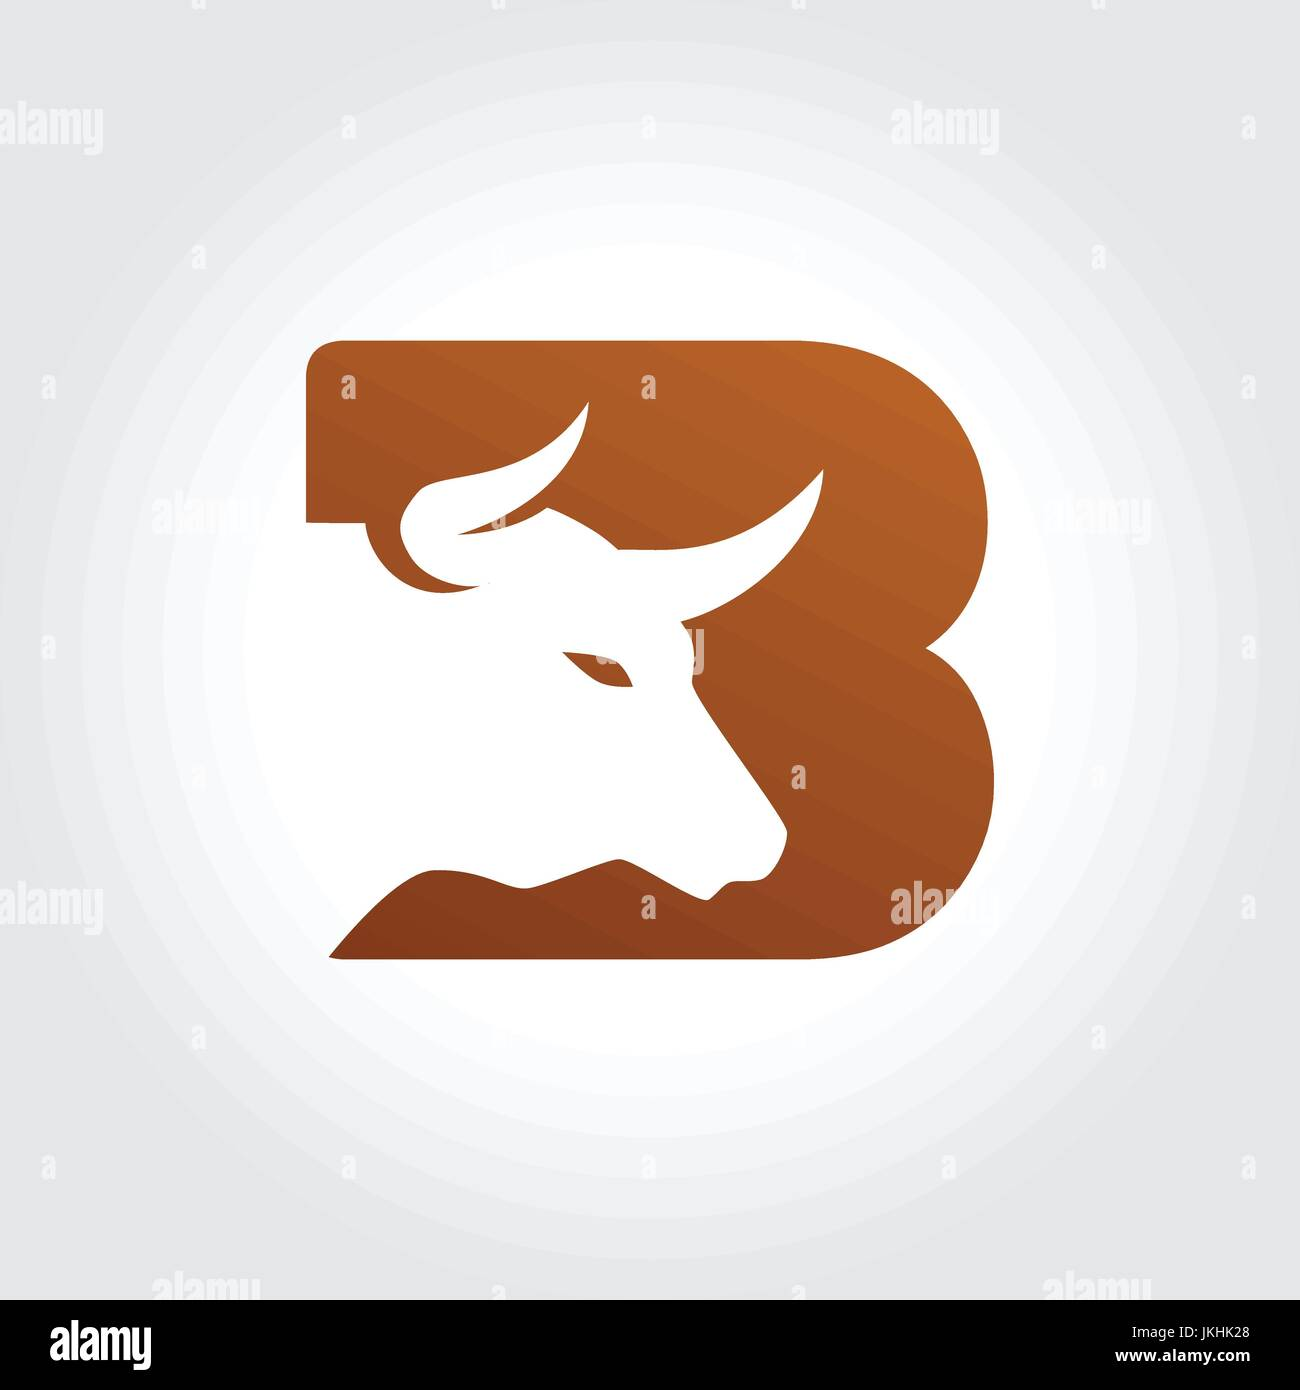 Exchange market bull icon design stock photos exchange market letter b symbol with bull head silhouette design stock image buycottarizona